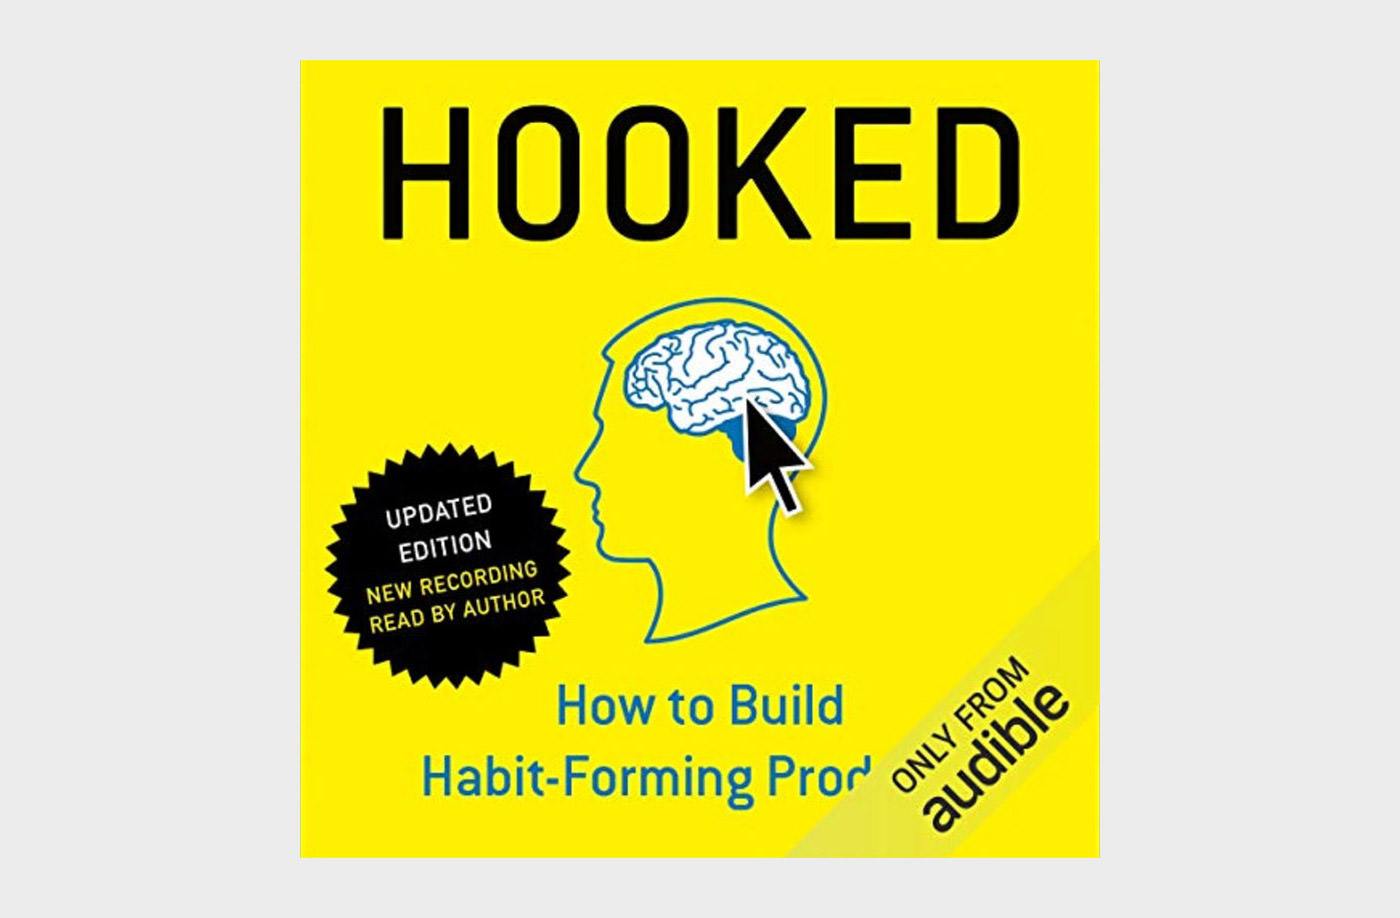 How to Build Habit-Forming Products